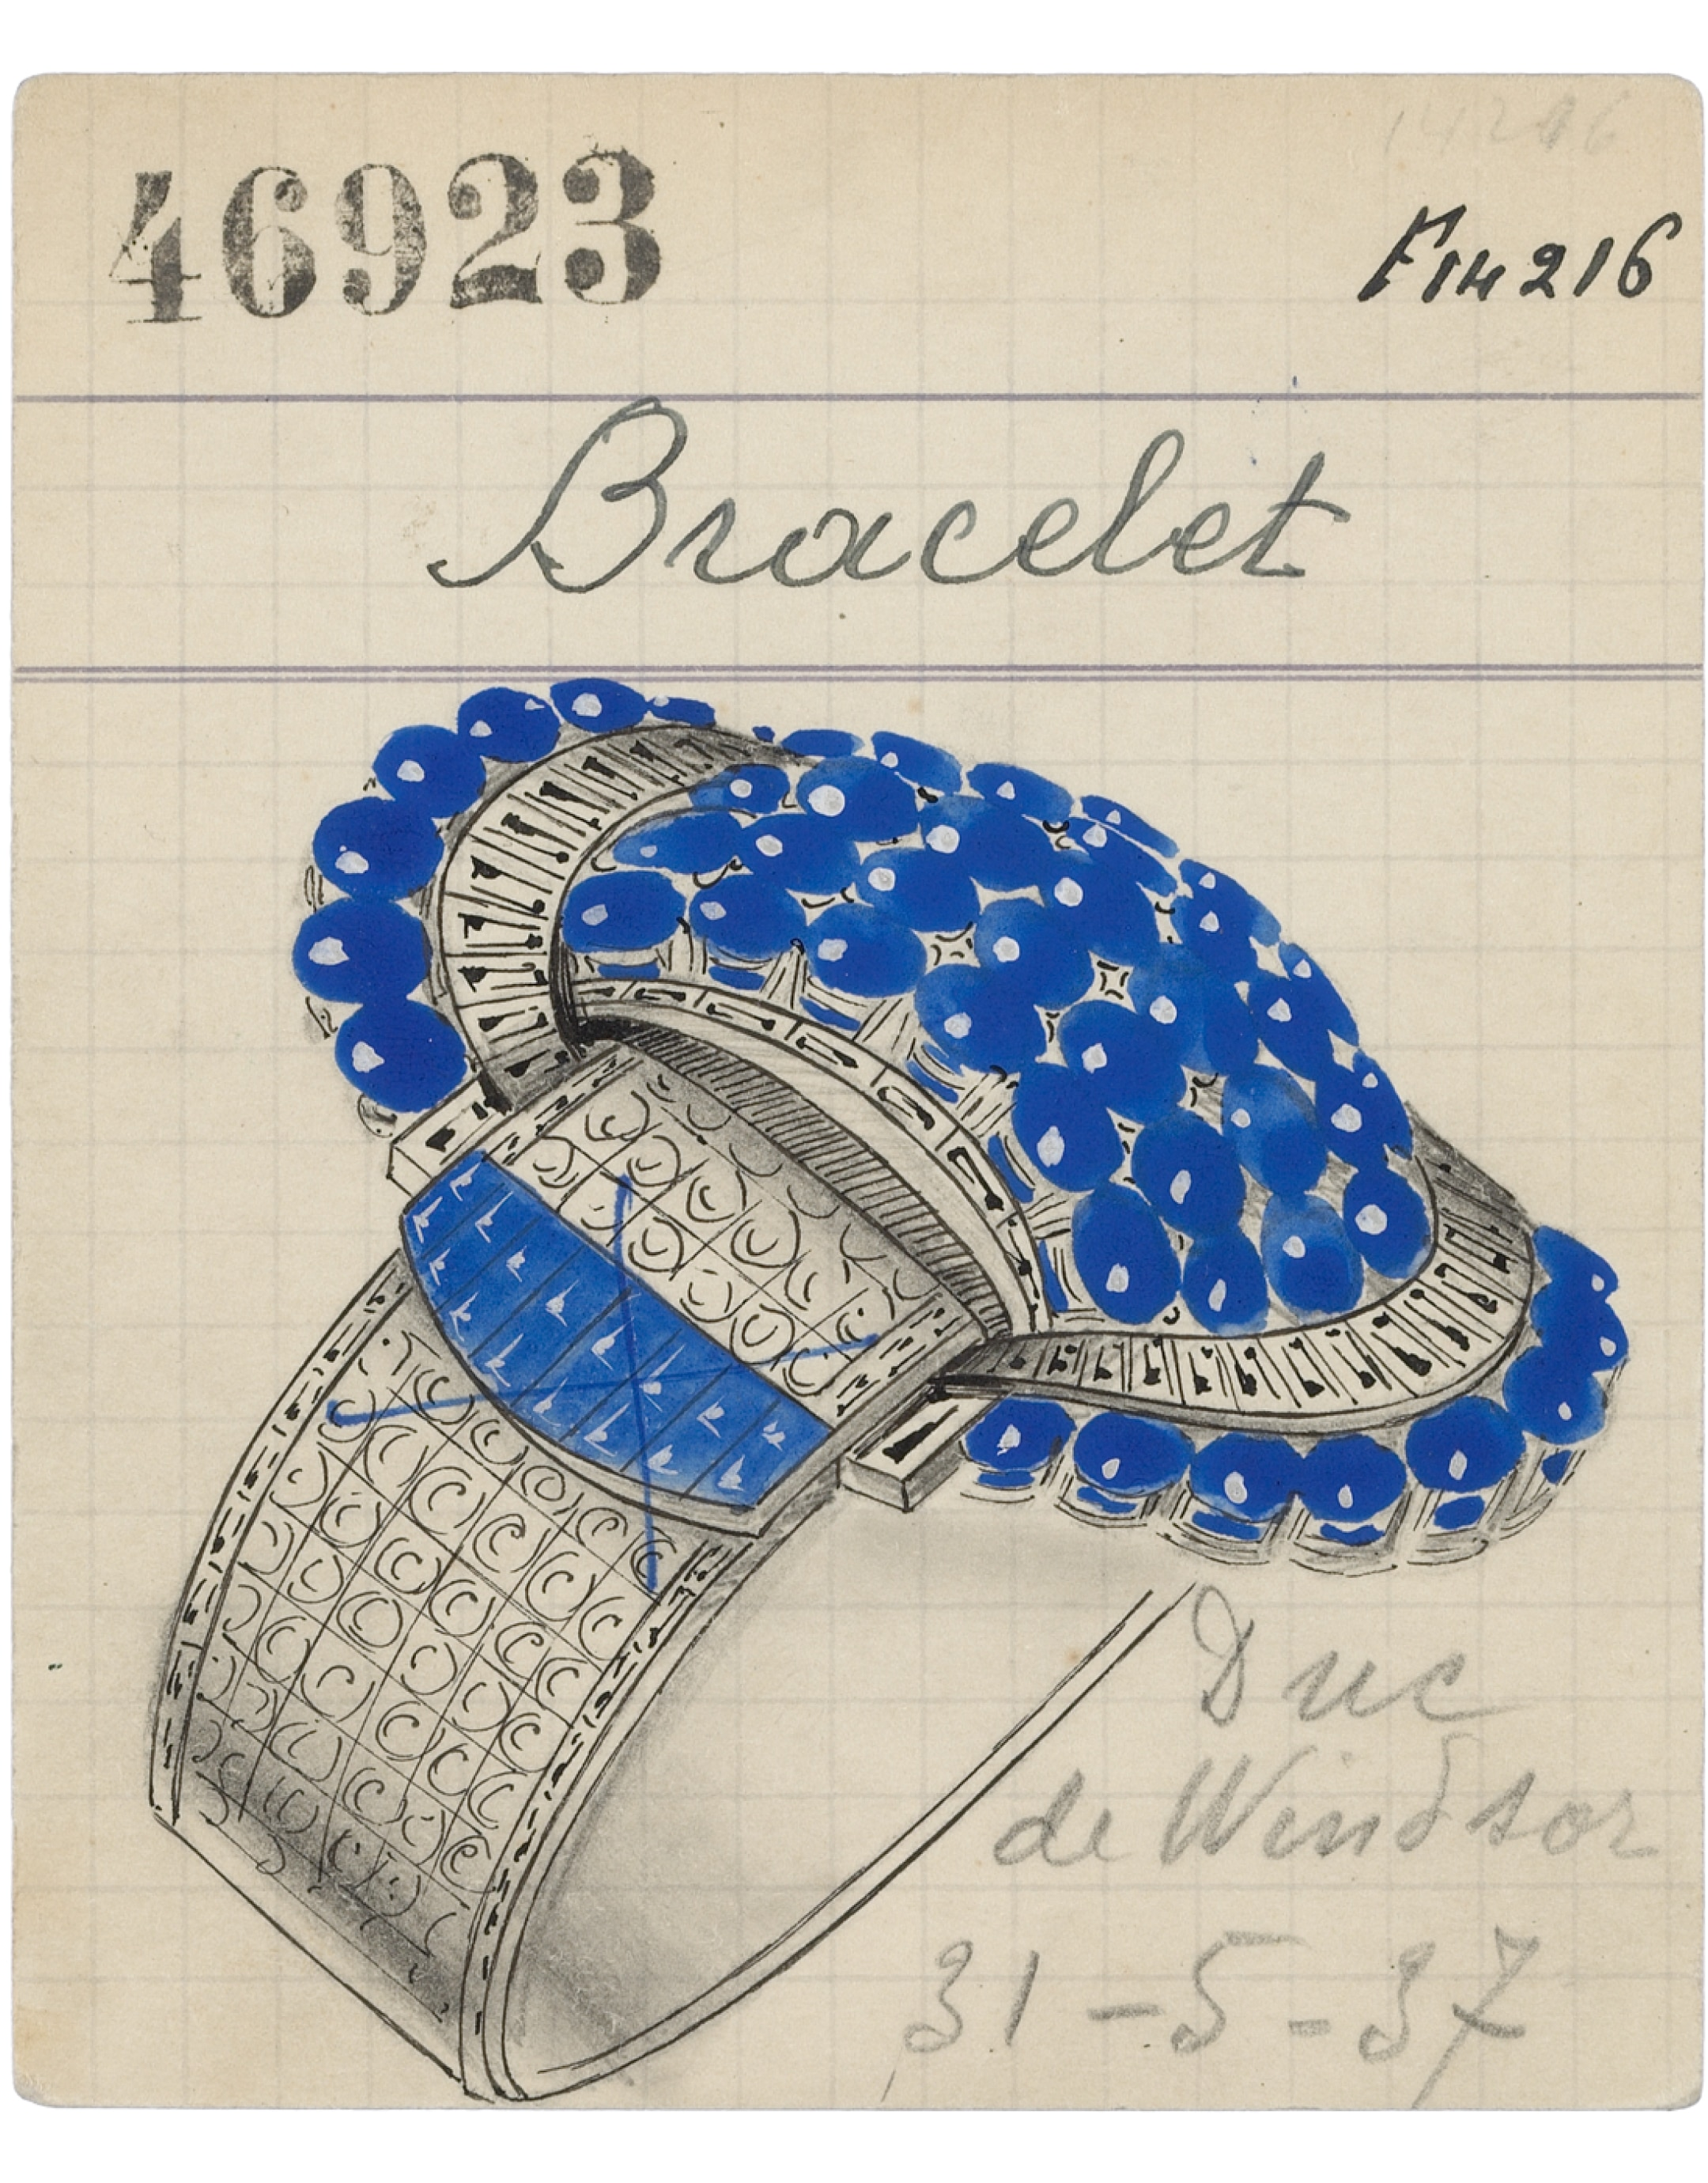 Product card of a Jarretière bracelet, 1937, Van Cleef & Arpels Archives